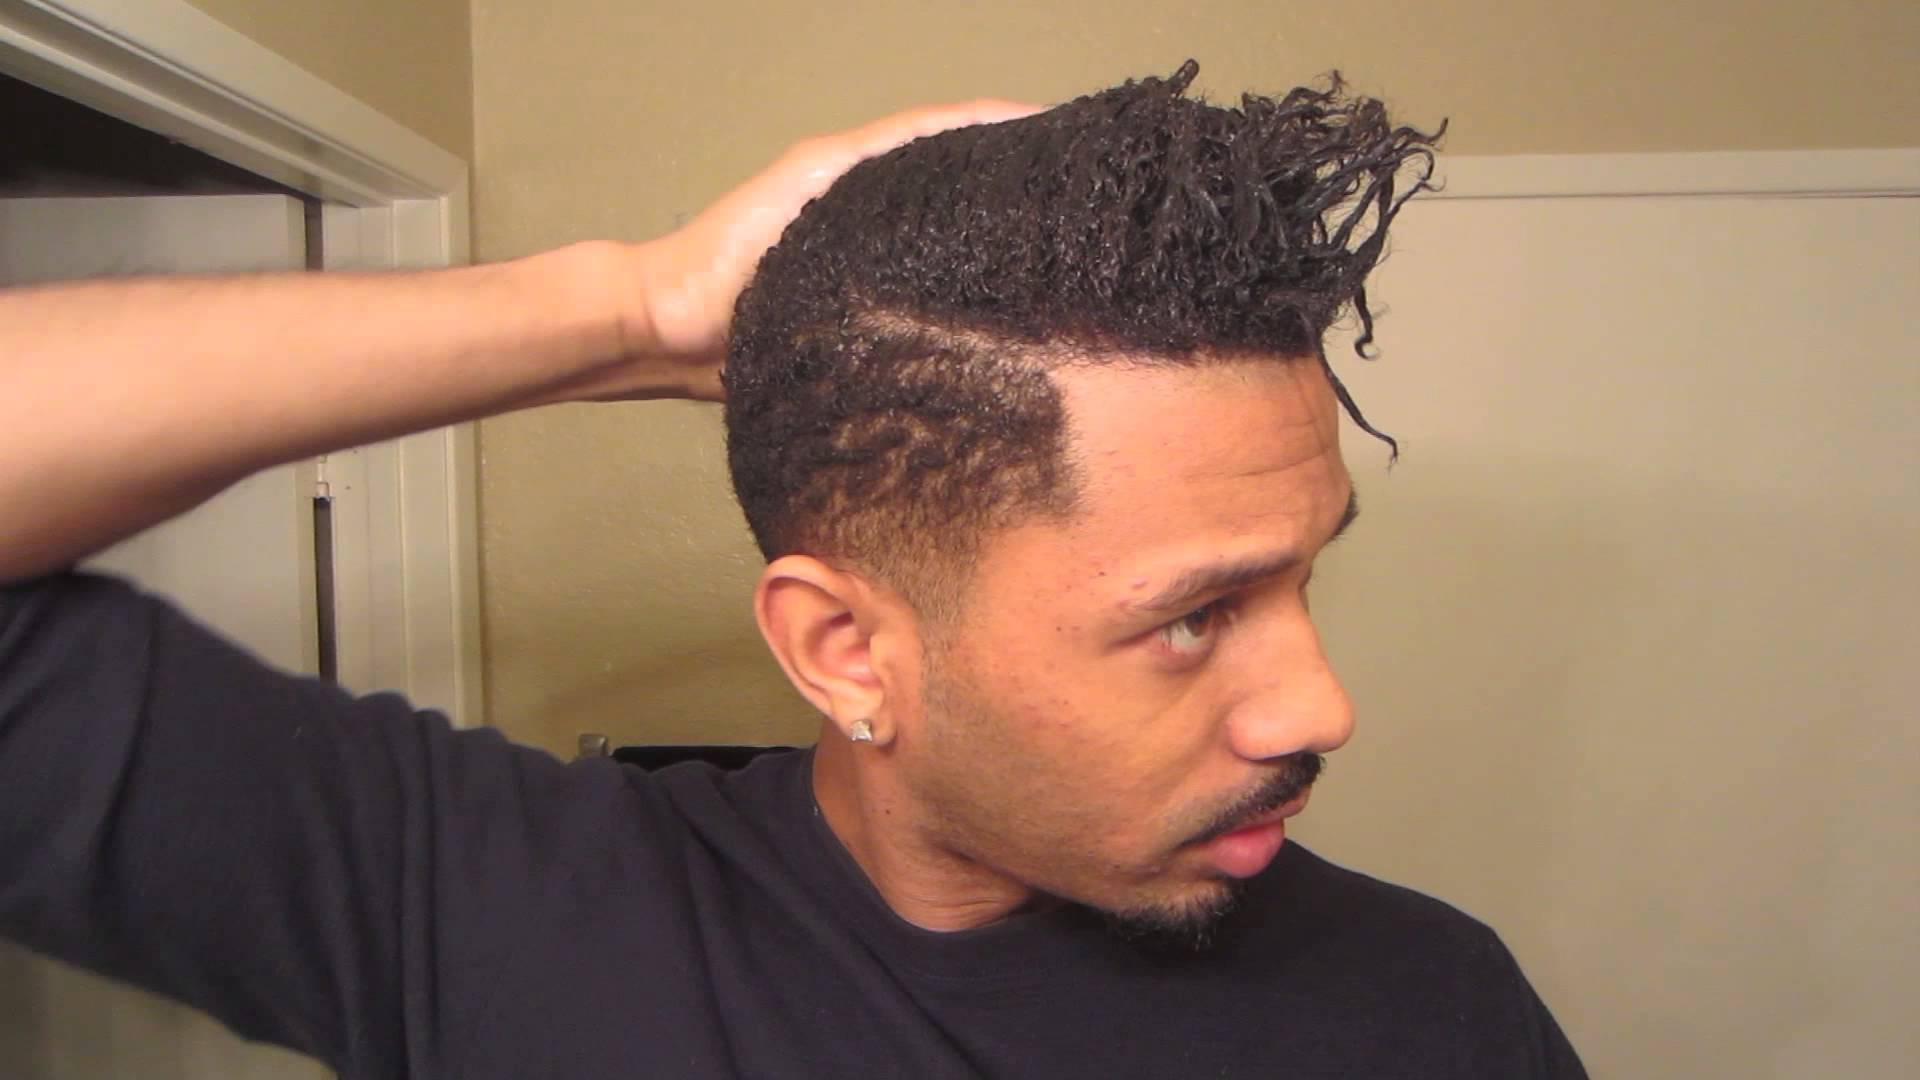 Sources Inspiration For Stunning Black Men Hair Style Sophie Hairstyles 13213